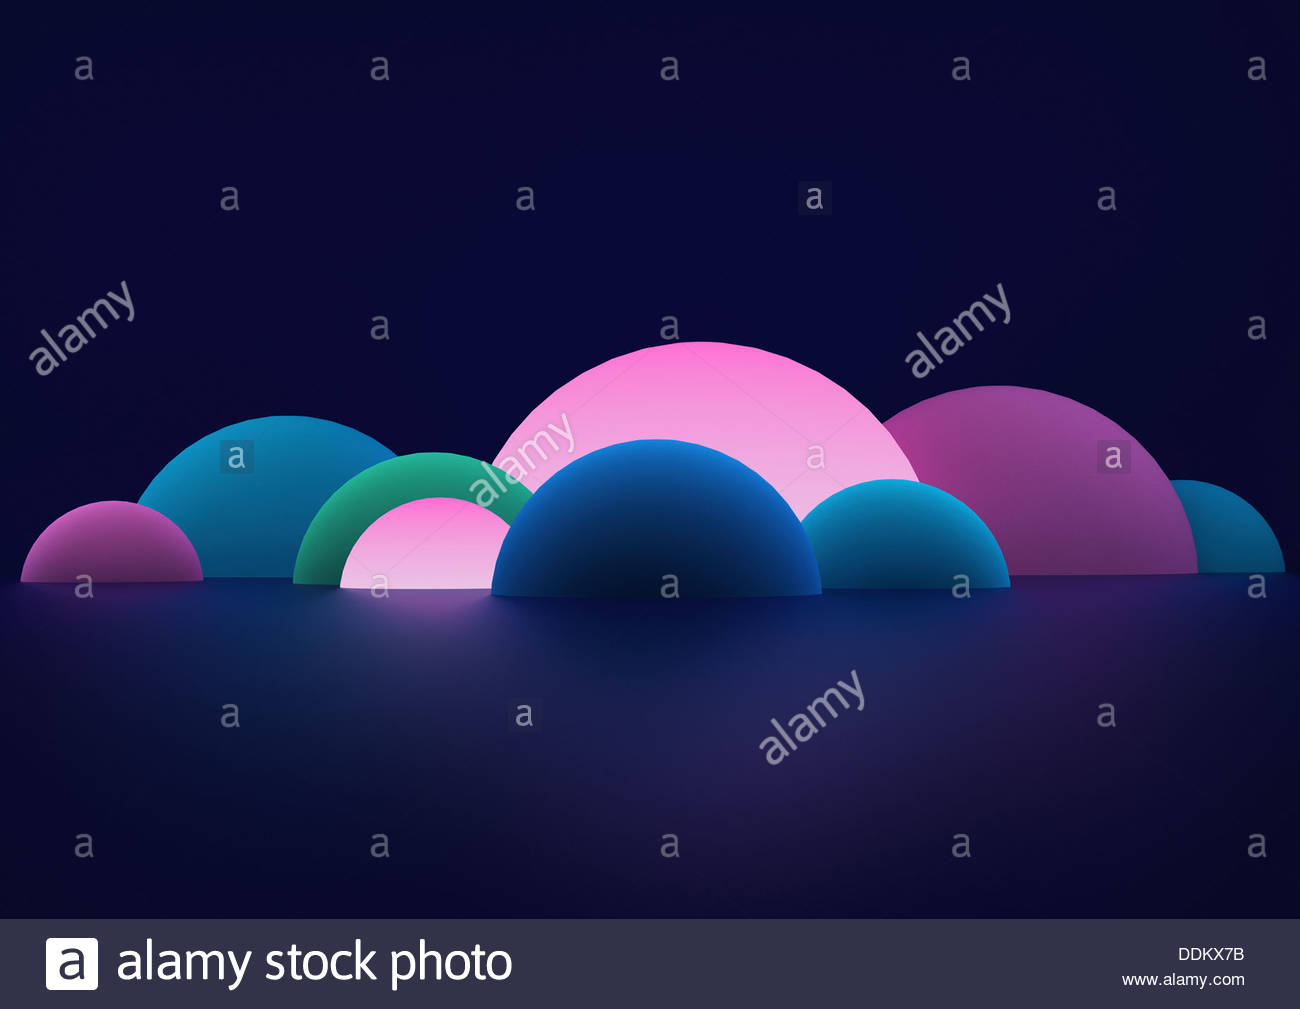 Glowing abstract hemisphere shapes - Stock Image